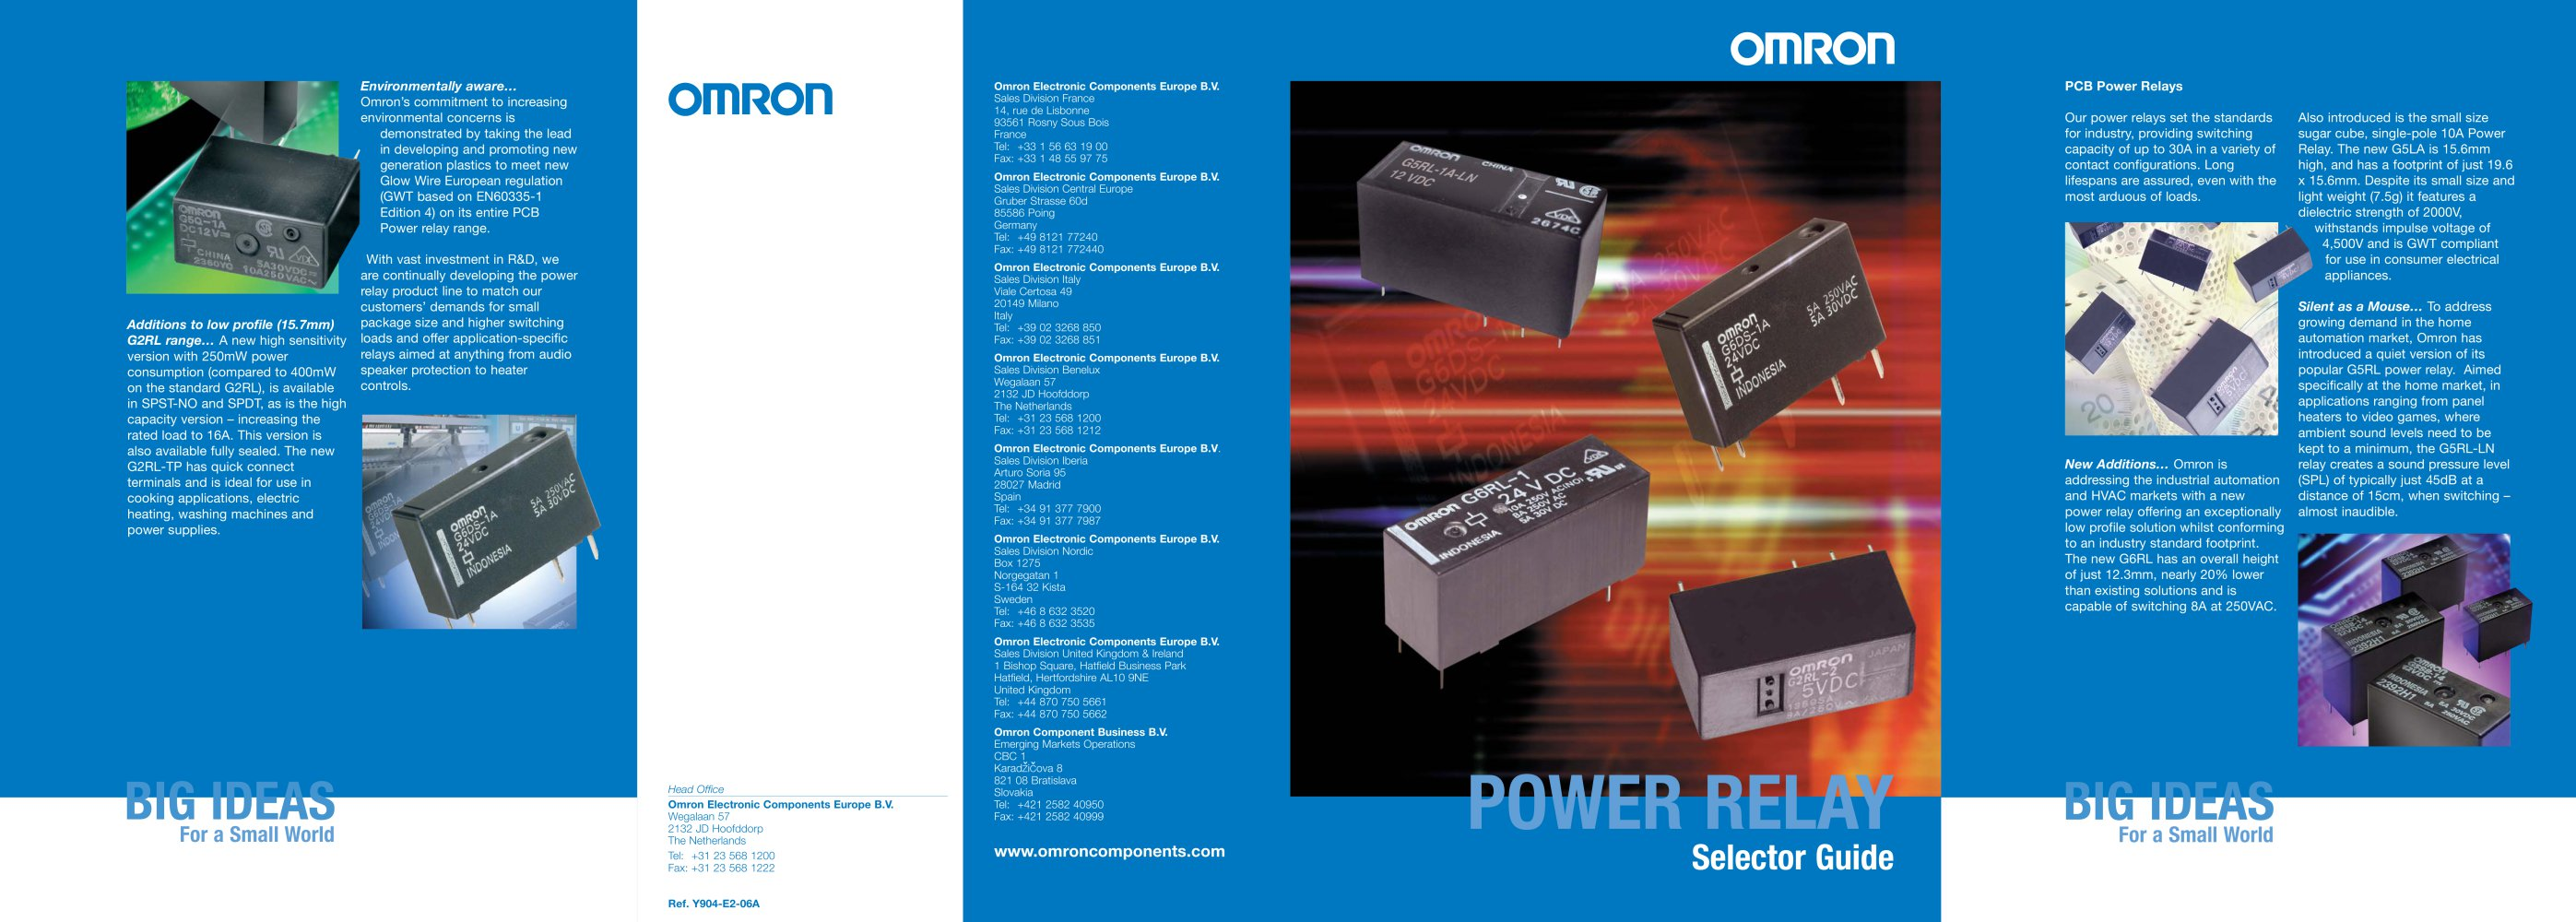 Power Relay Product Brochure Omron Electrical Components Pdf Electric Uses 1 2 Pages